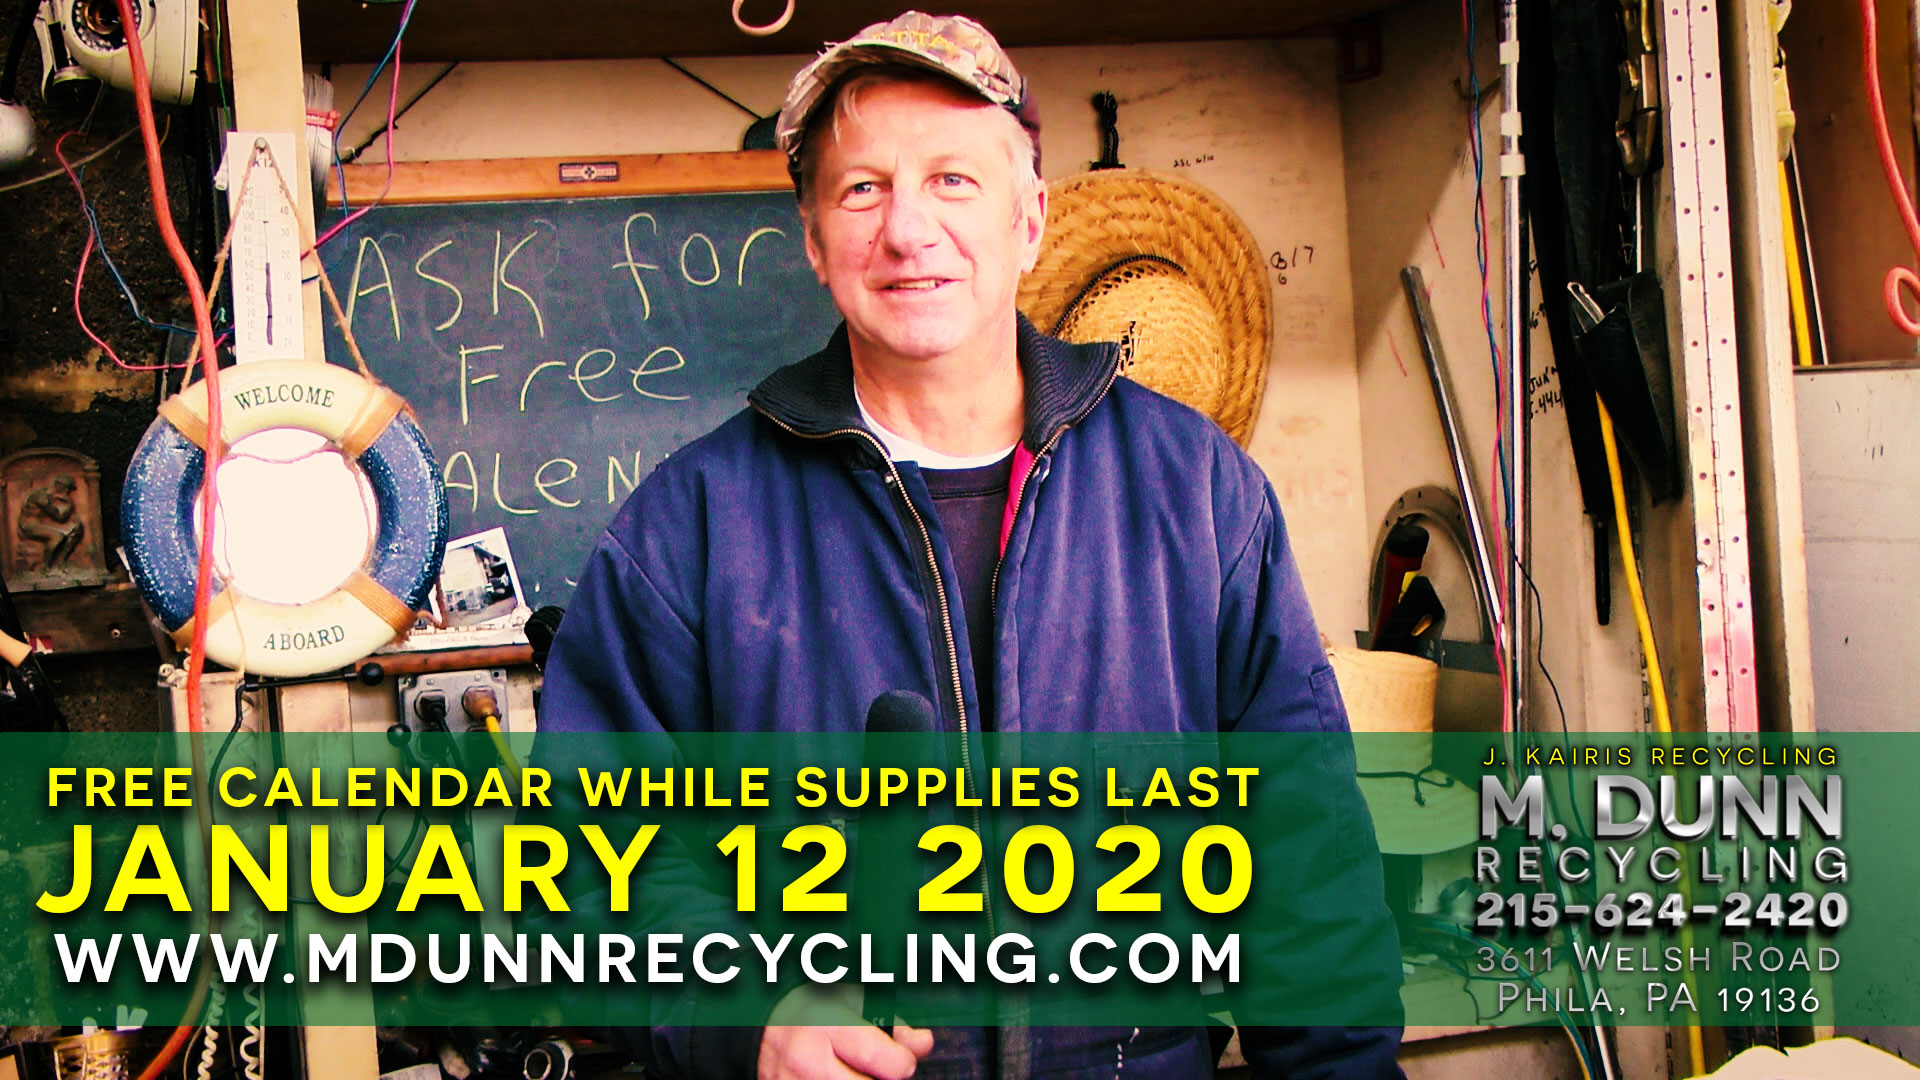 Scrap Metal Prices Philadelphia January 12, 2020 Get your FREE 2020 Calendar and how to test to see if metal is Brass or Die Cast, plus prices for December 22, 2019 Happy Holiday